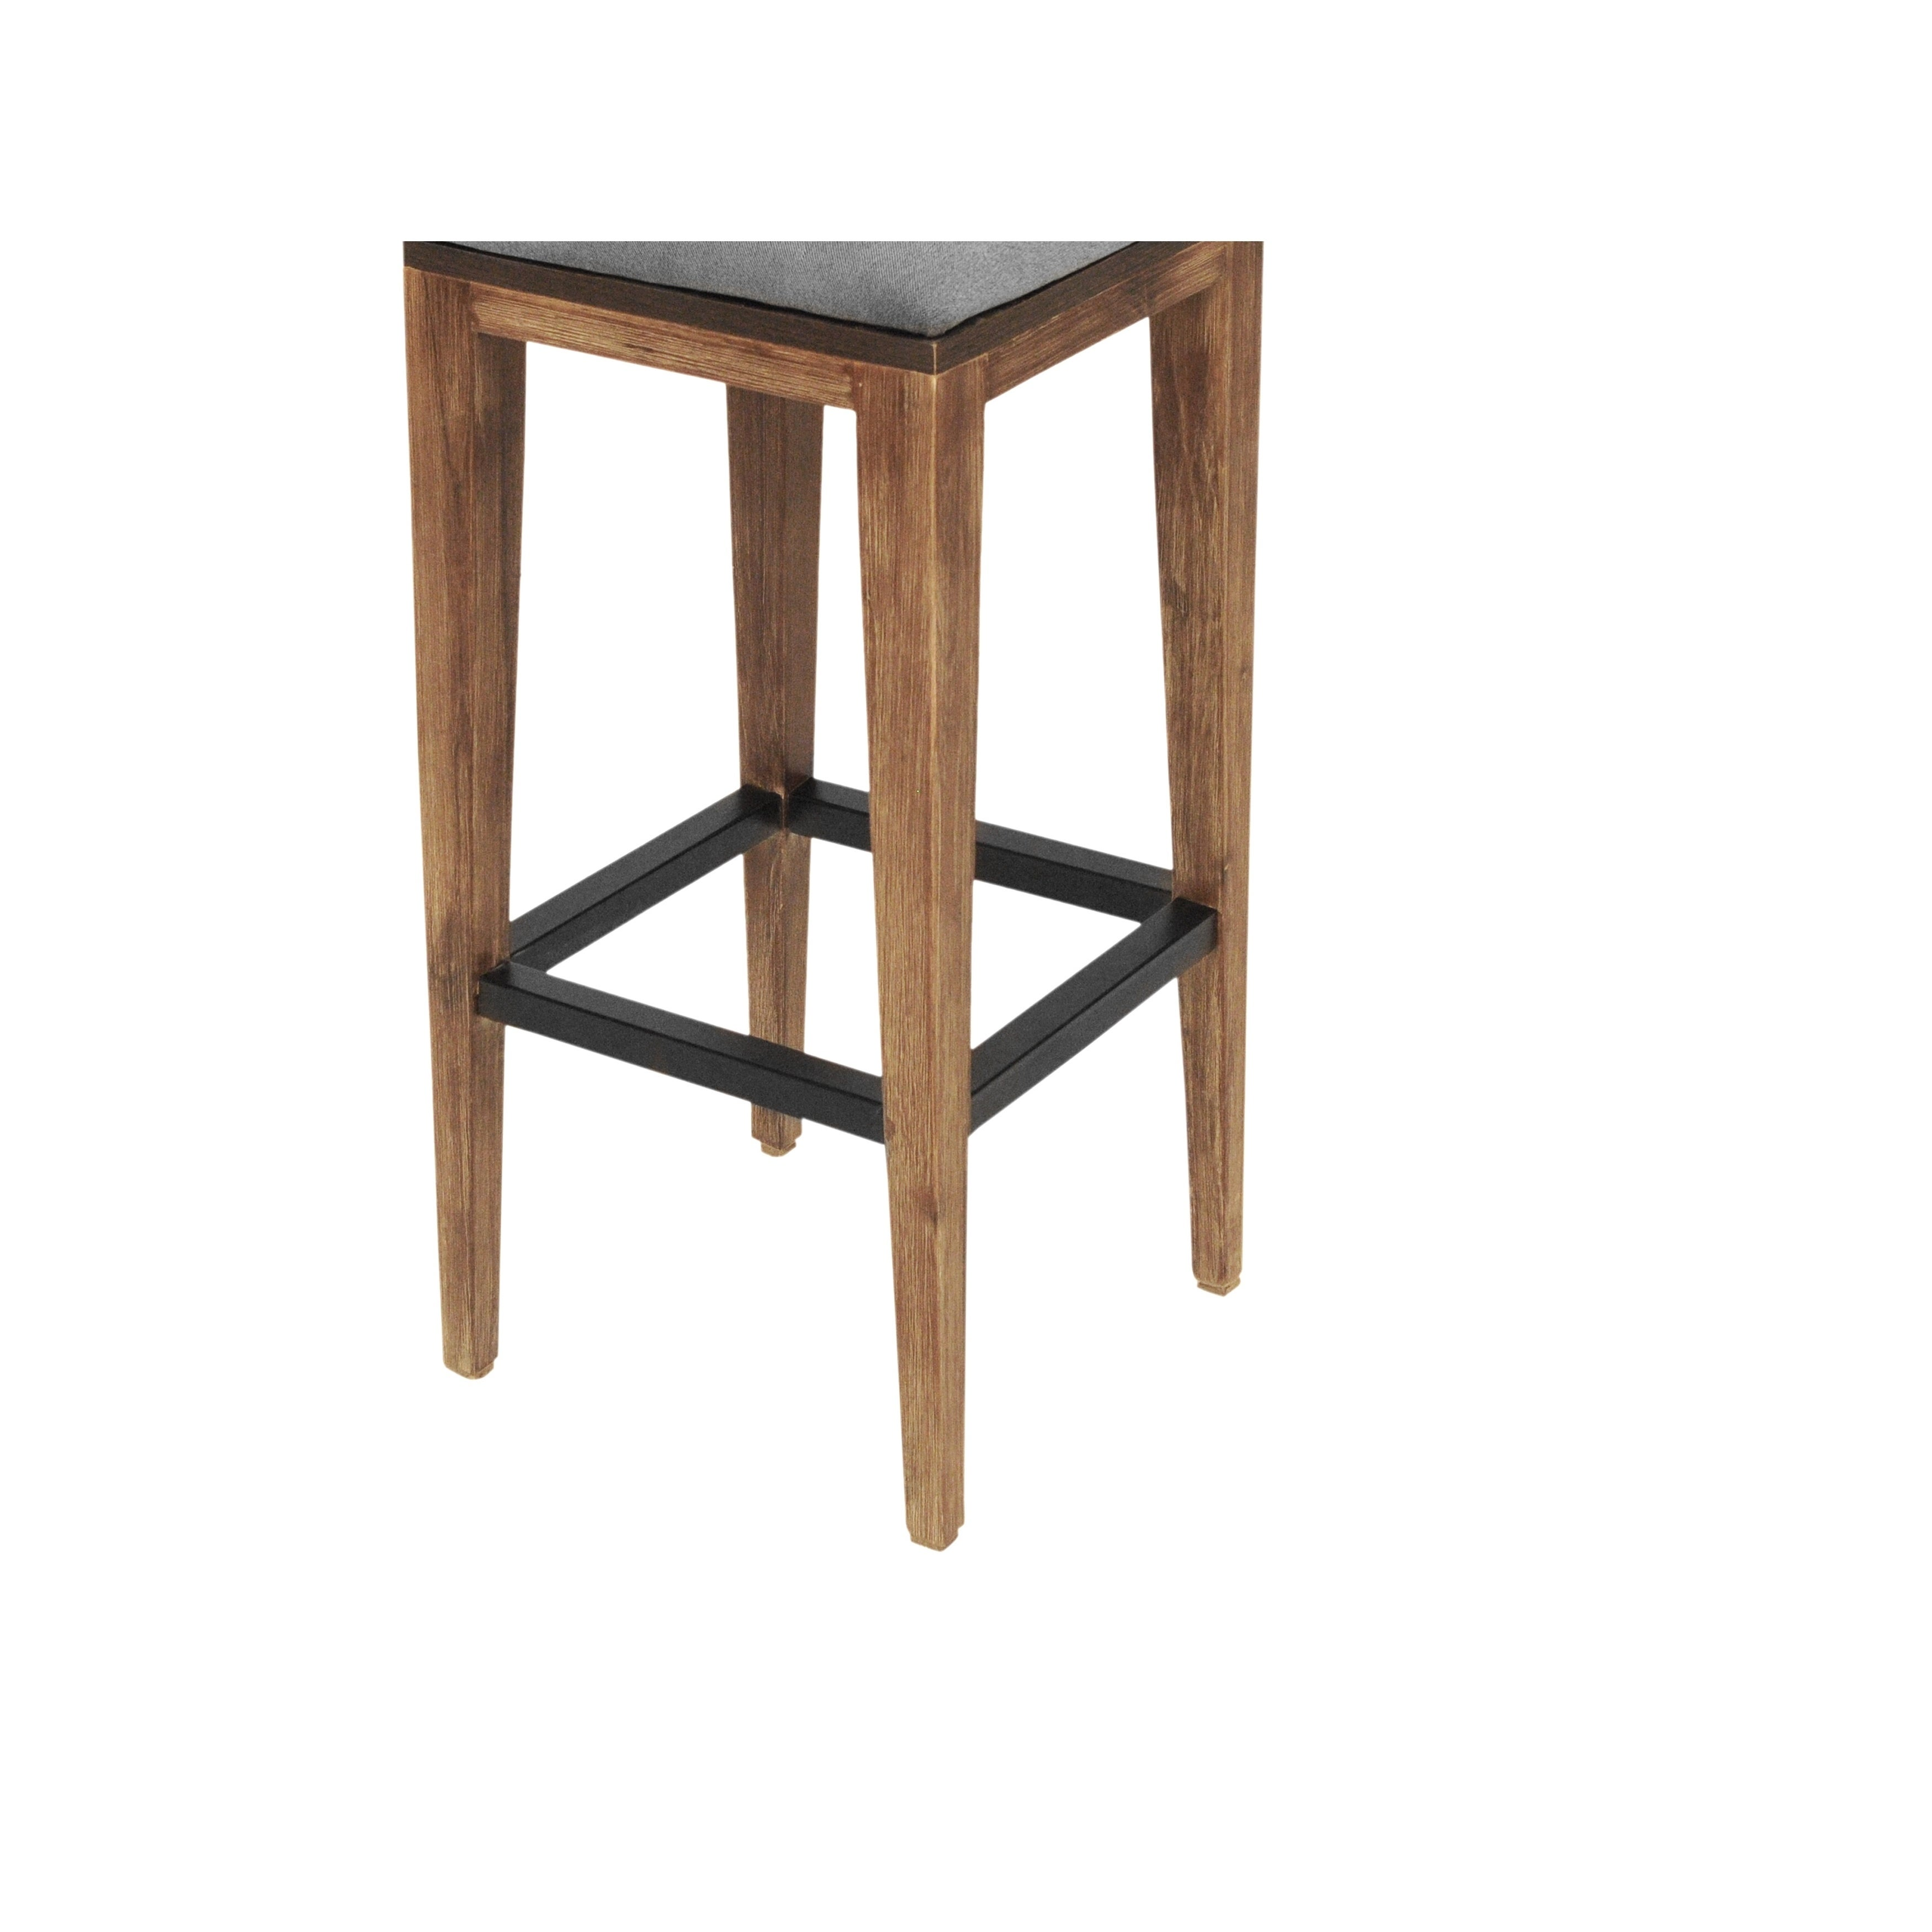 Awesome Cdi Furniture Medley Two Tone Wood Bar Stool Dailytribune Chair Design For Home Dailytribuneorg